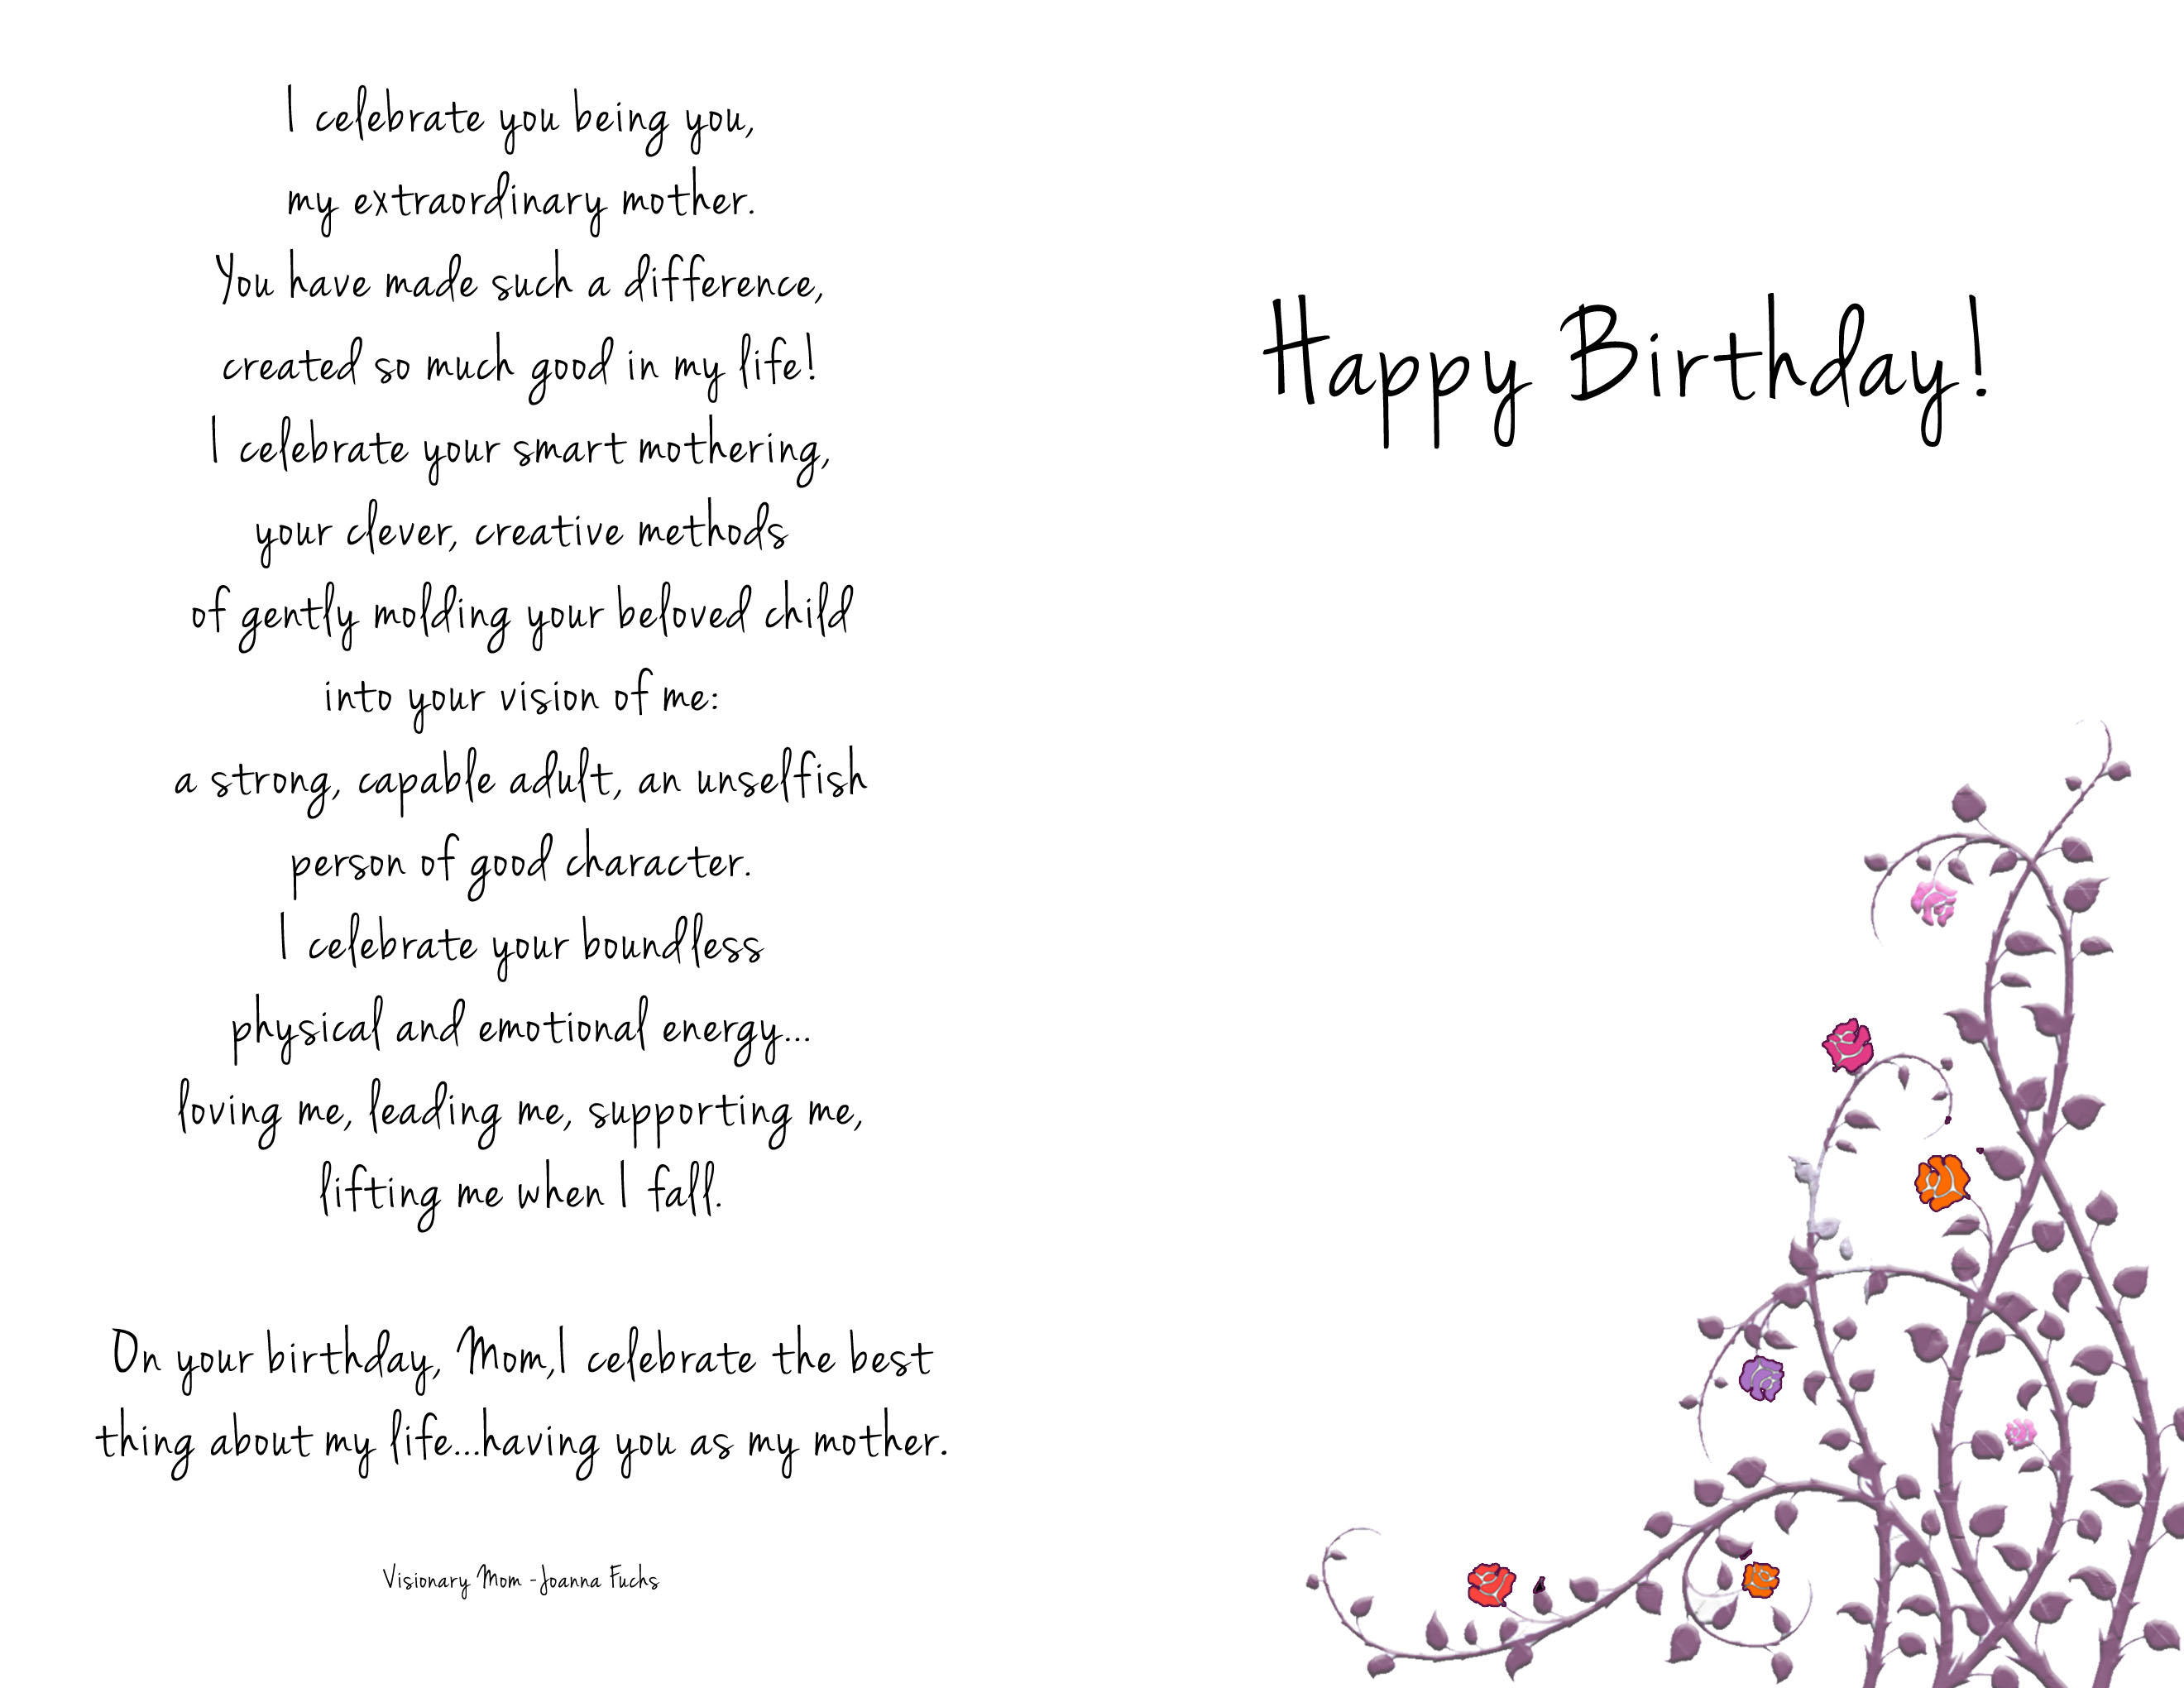 happy birthday mom card messages ; c71bf7eda6649b31aaca765d0ee3b528